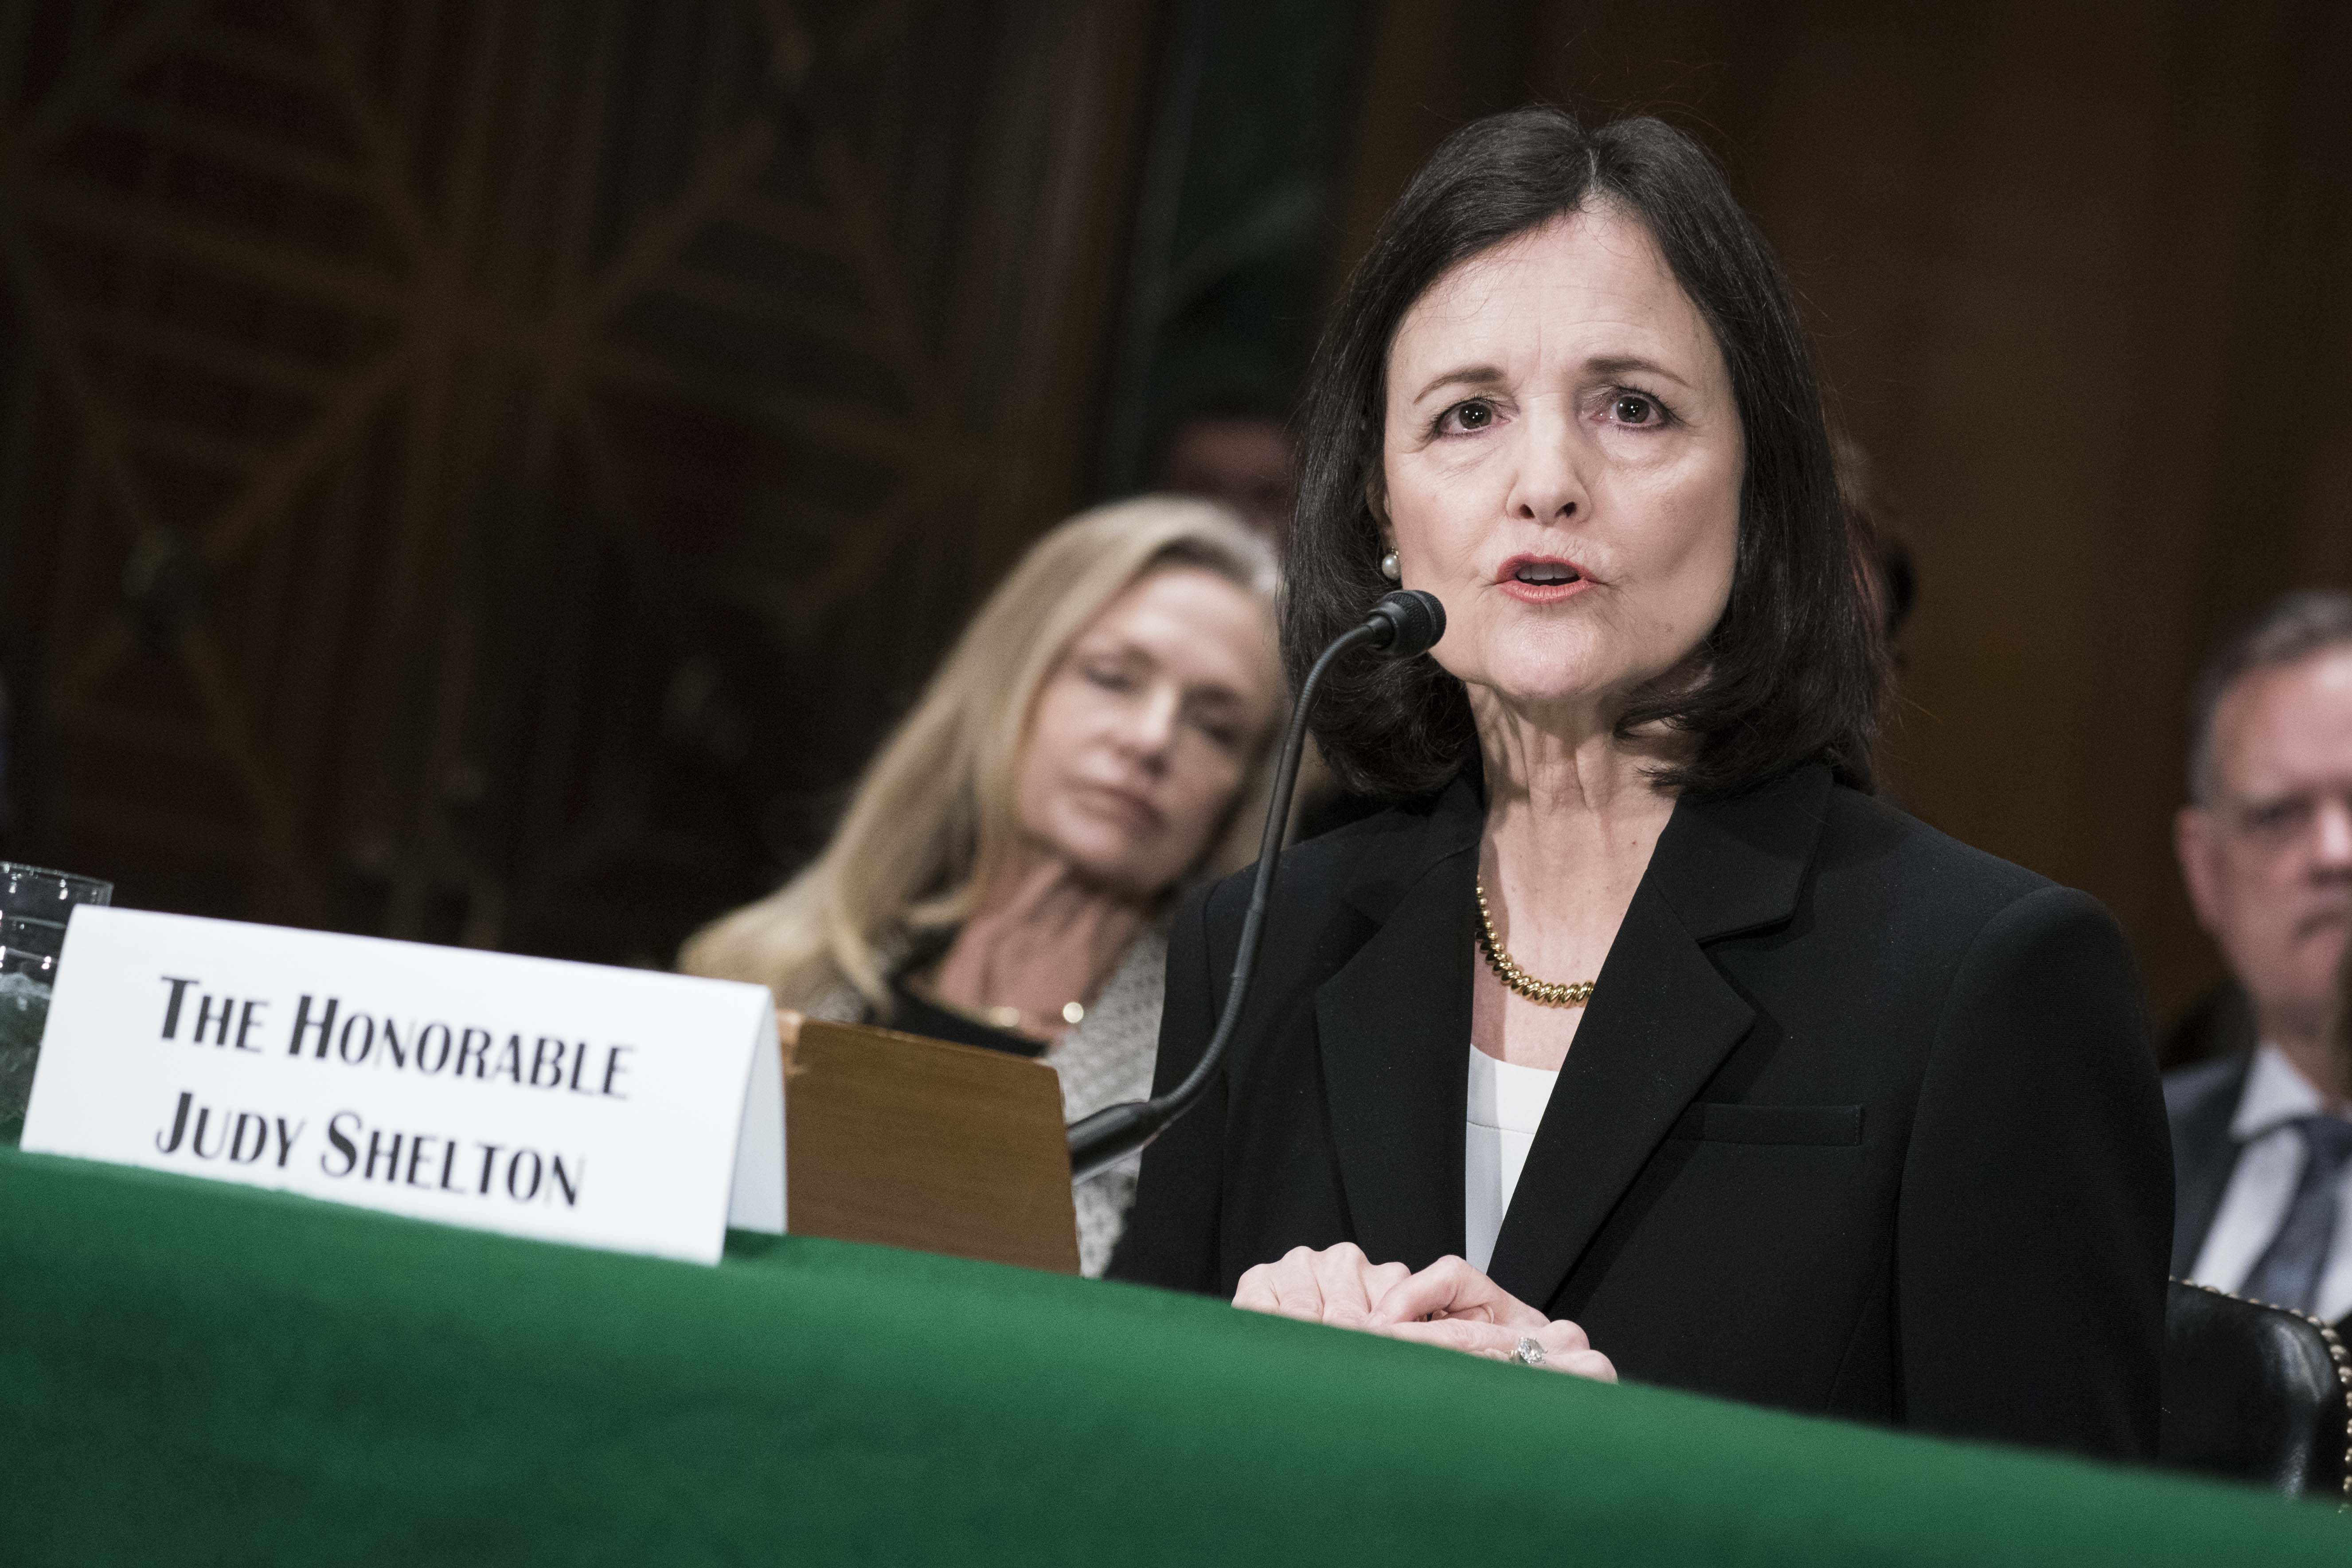 Judy Shelton speaks seated at a desk with a microphone.